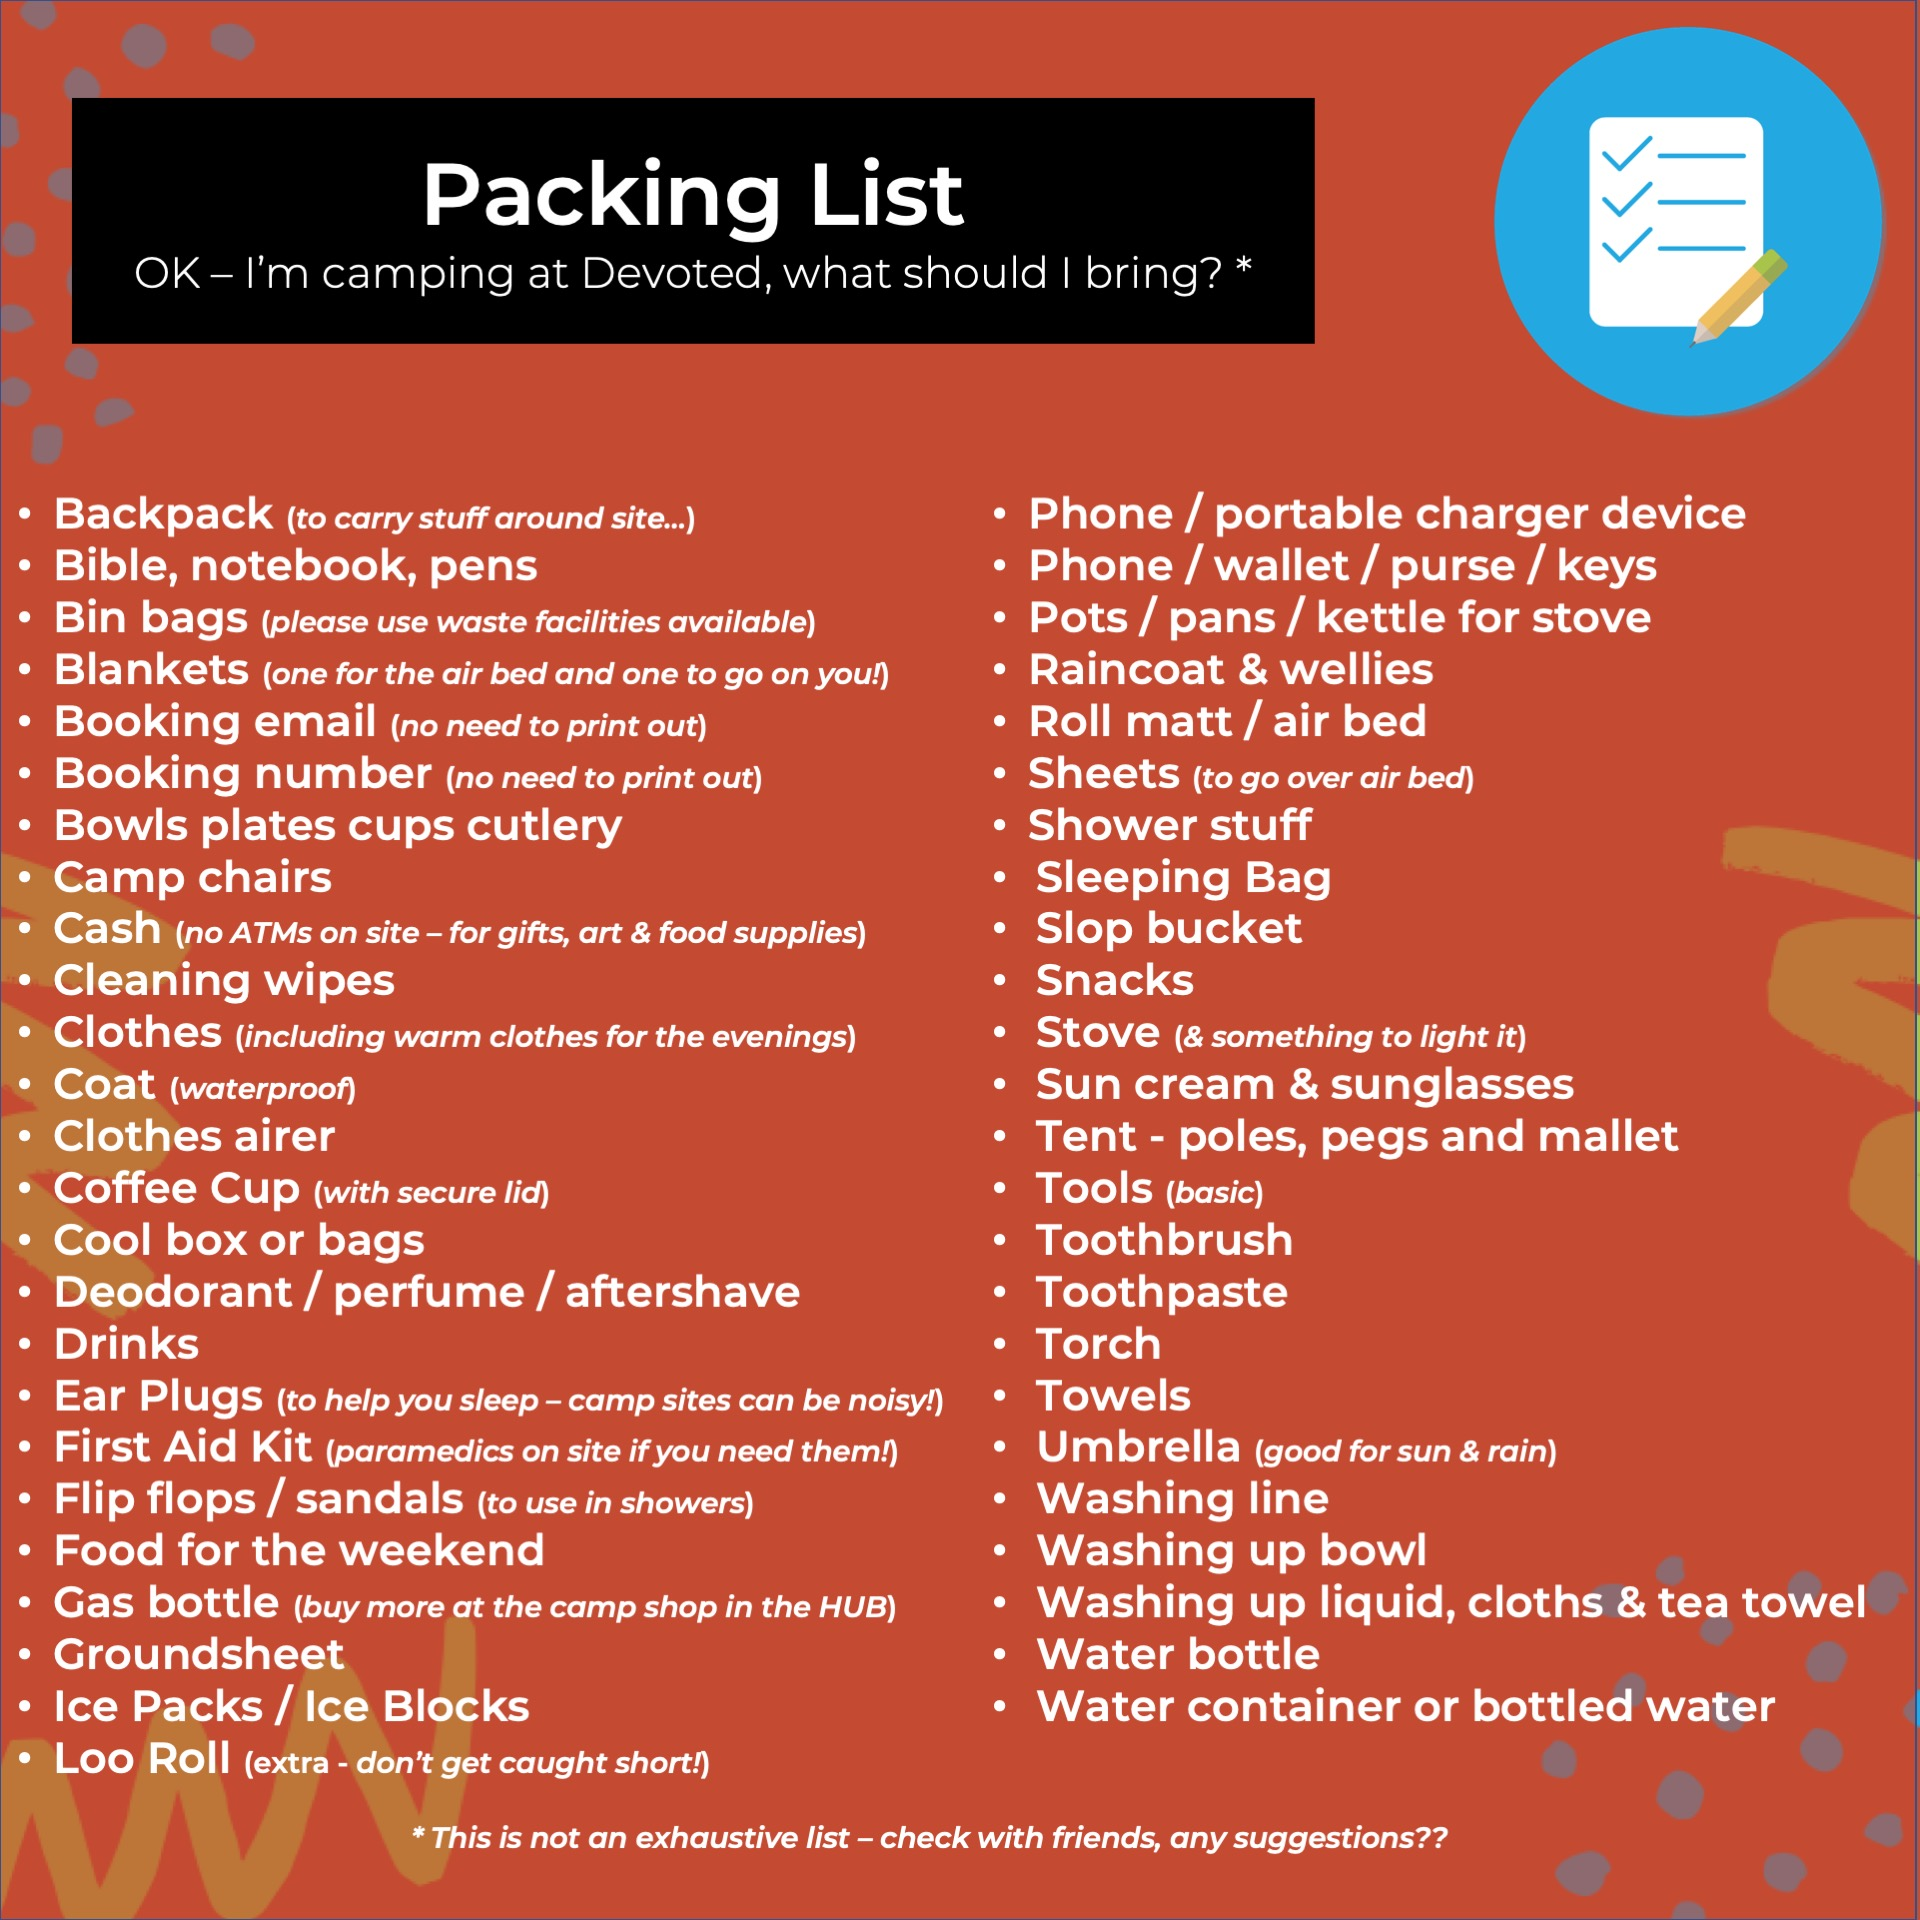 Packing List - Devoted